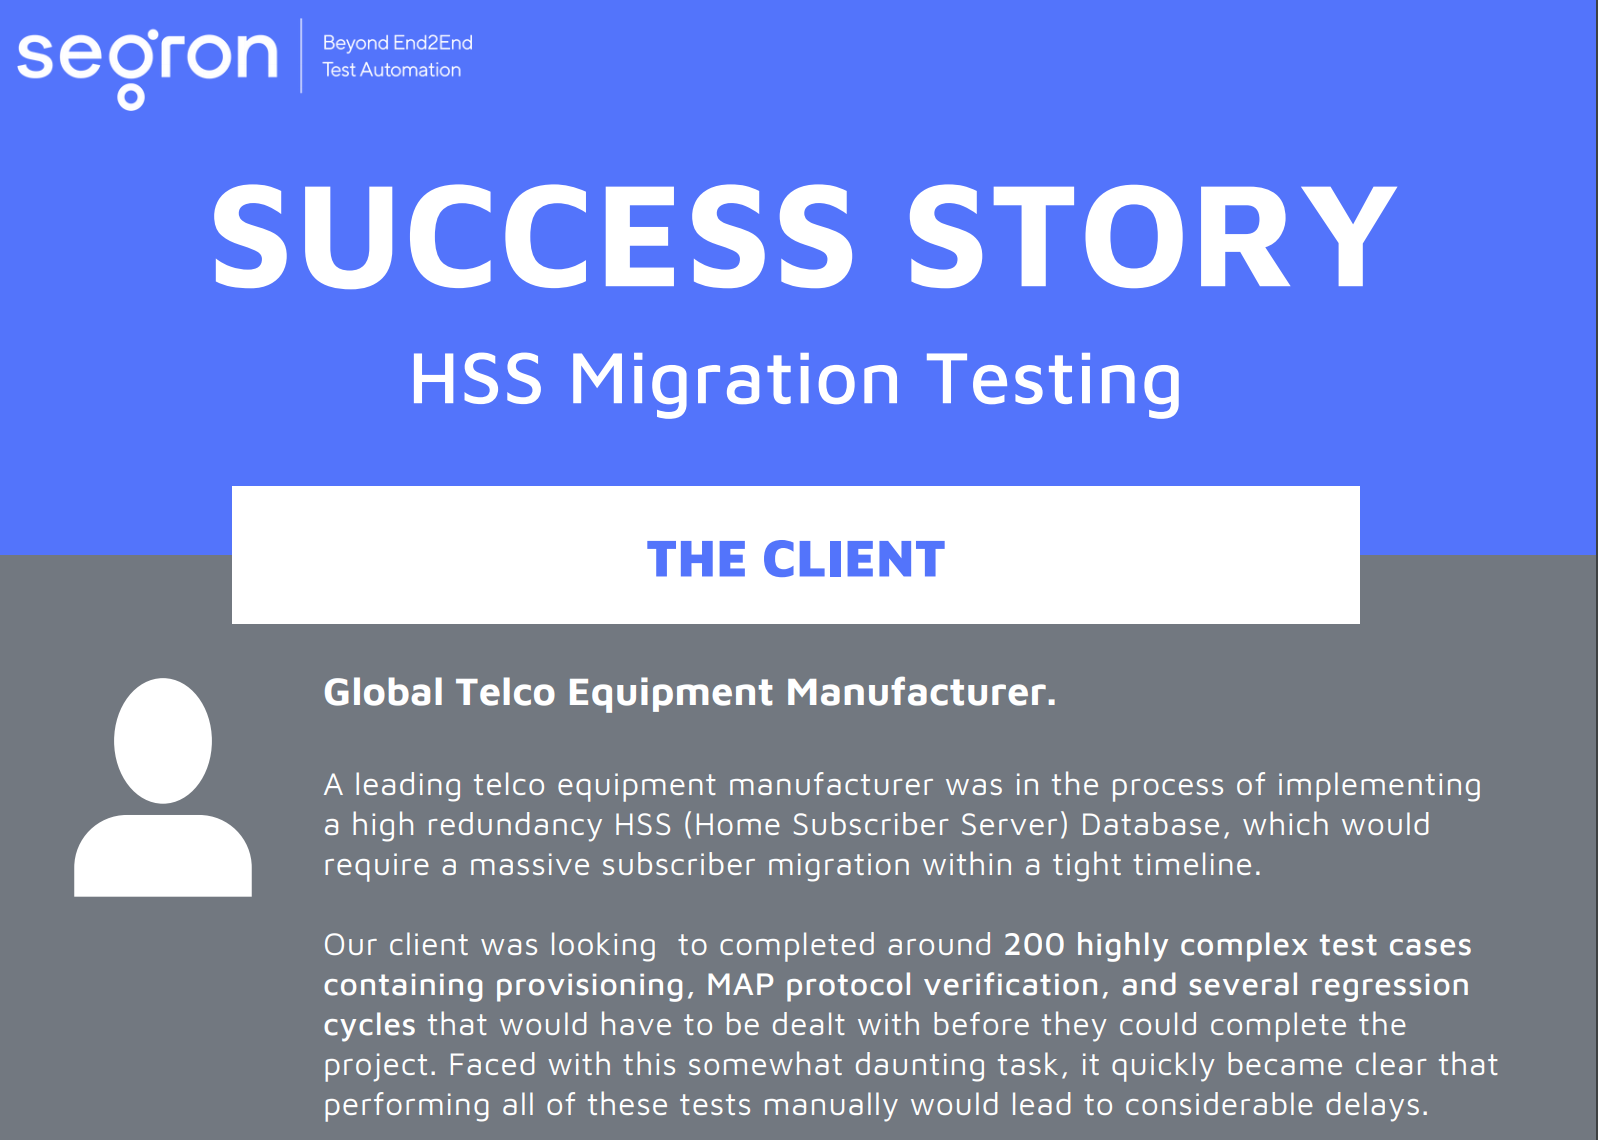 Learn more about HSS migration testing